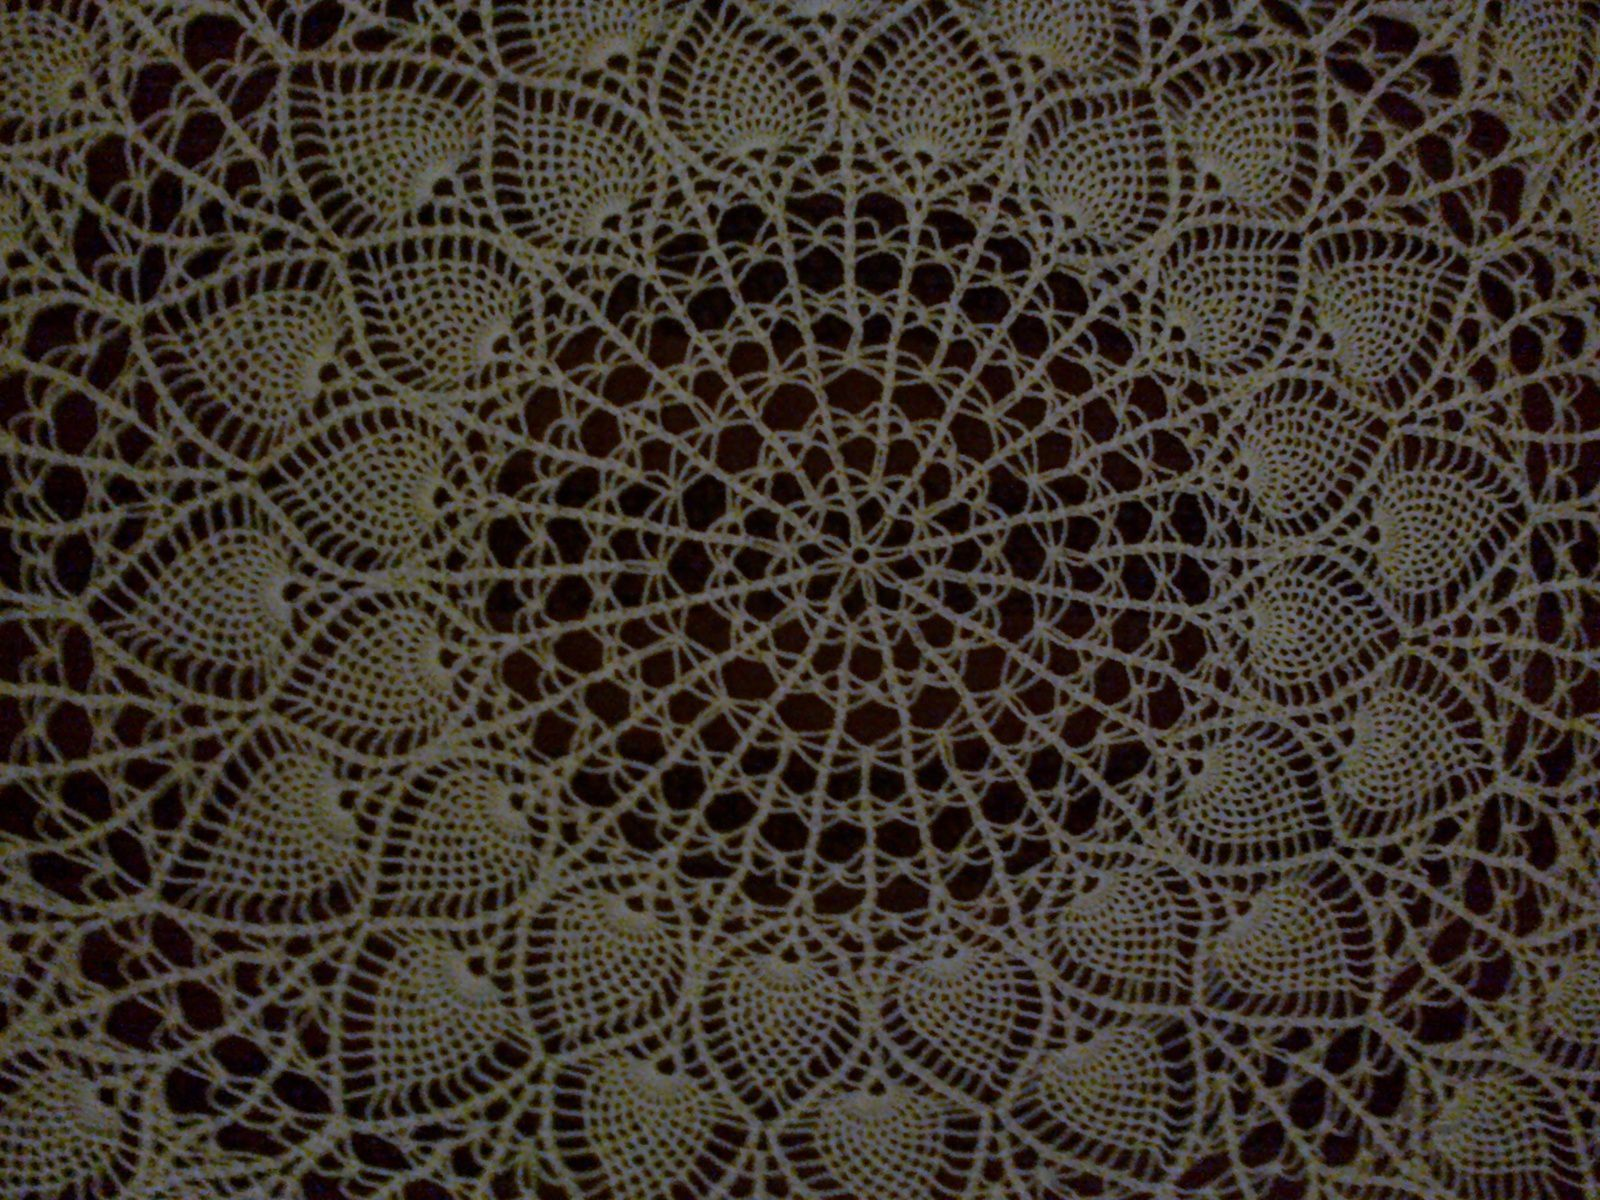 Crochet d'art : napperon cathédrale